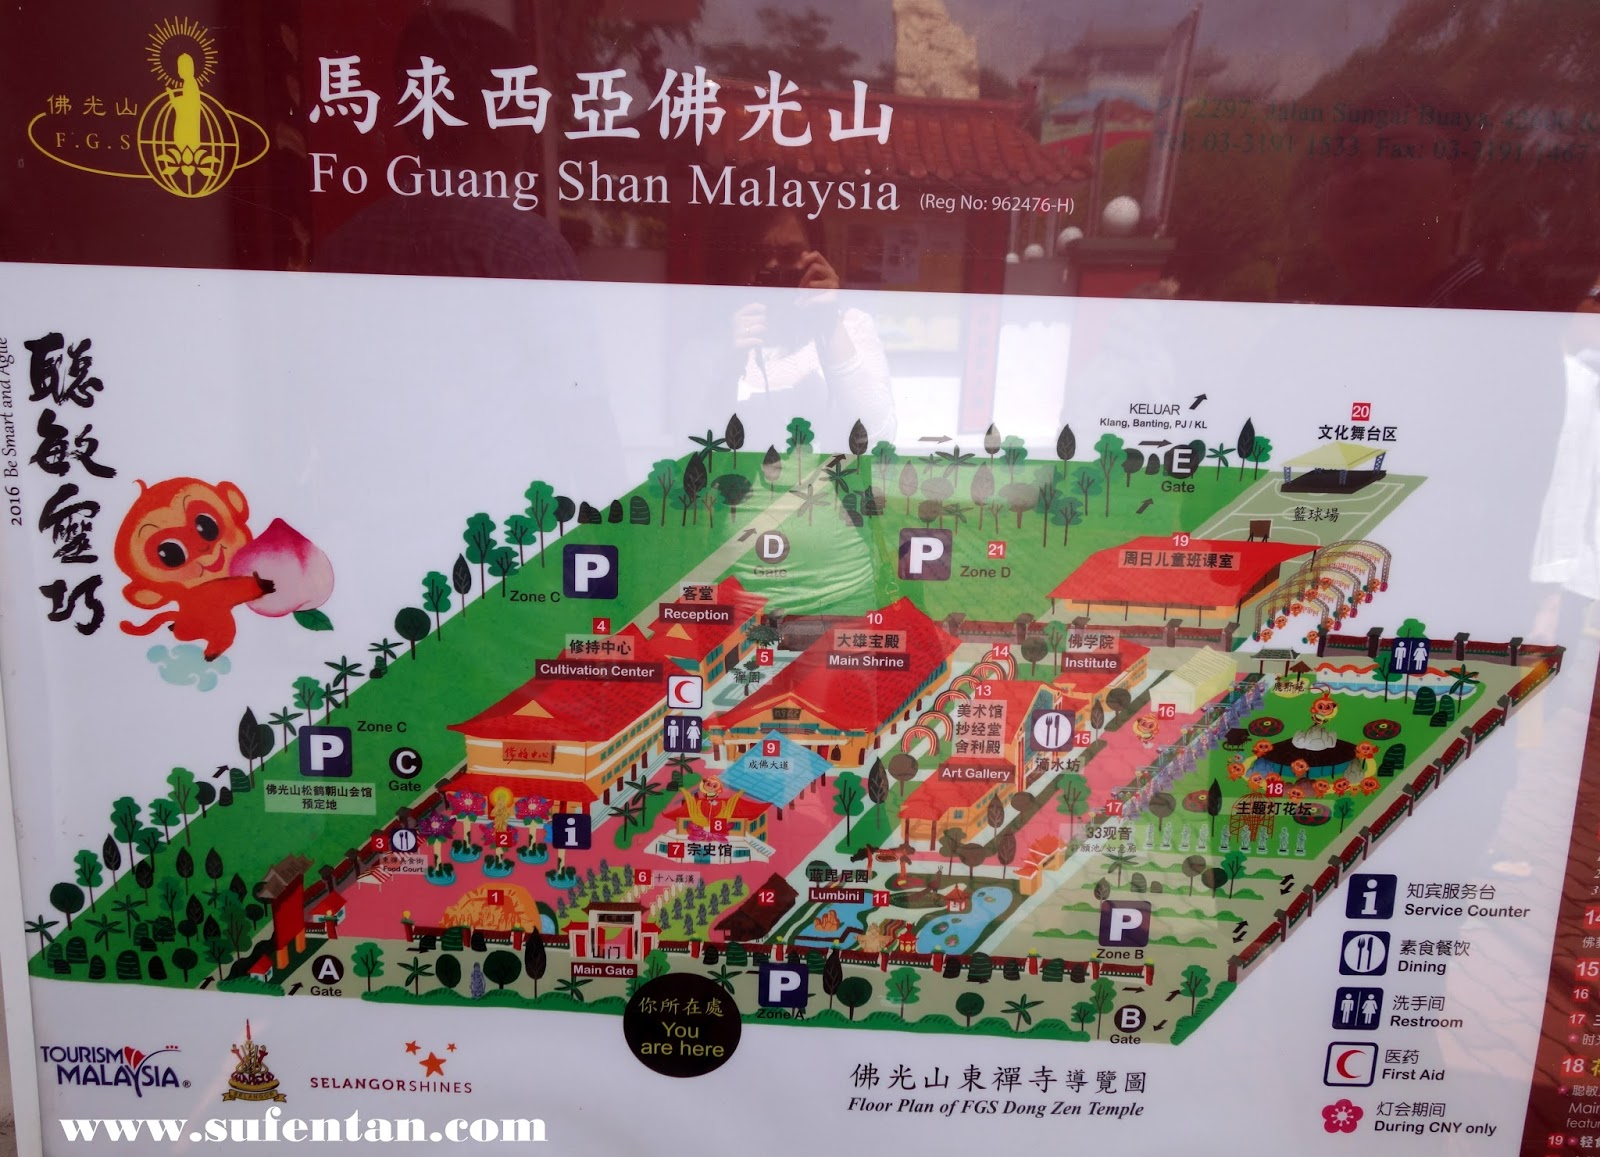 promotional marketing malaysia fo guang shan Marketing consultant bookxcess a kl city guide for families added 23 new photos to the album: fo guang shan malaysia see more +5.